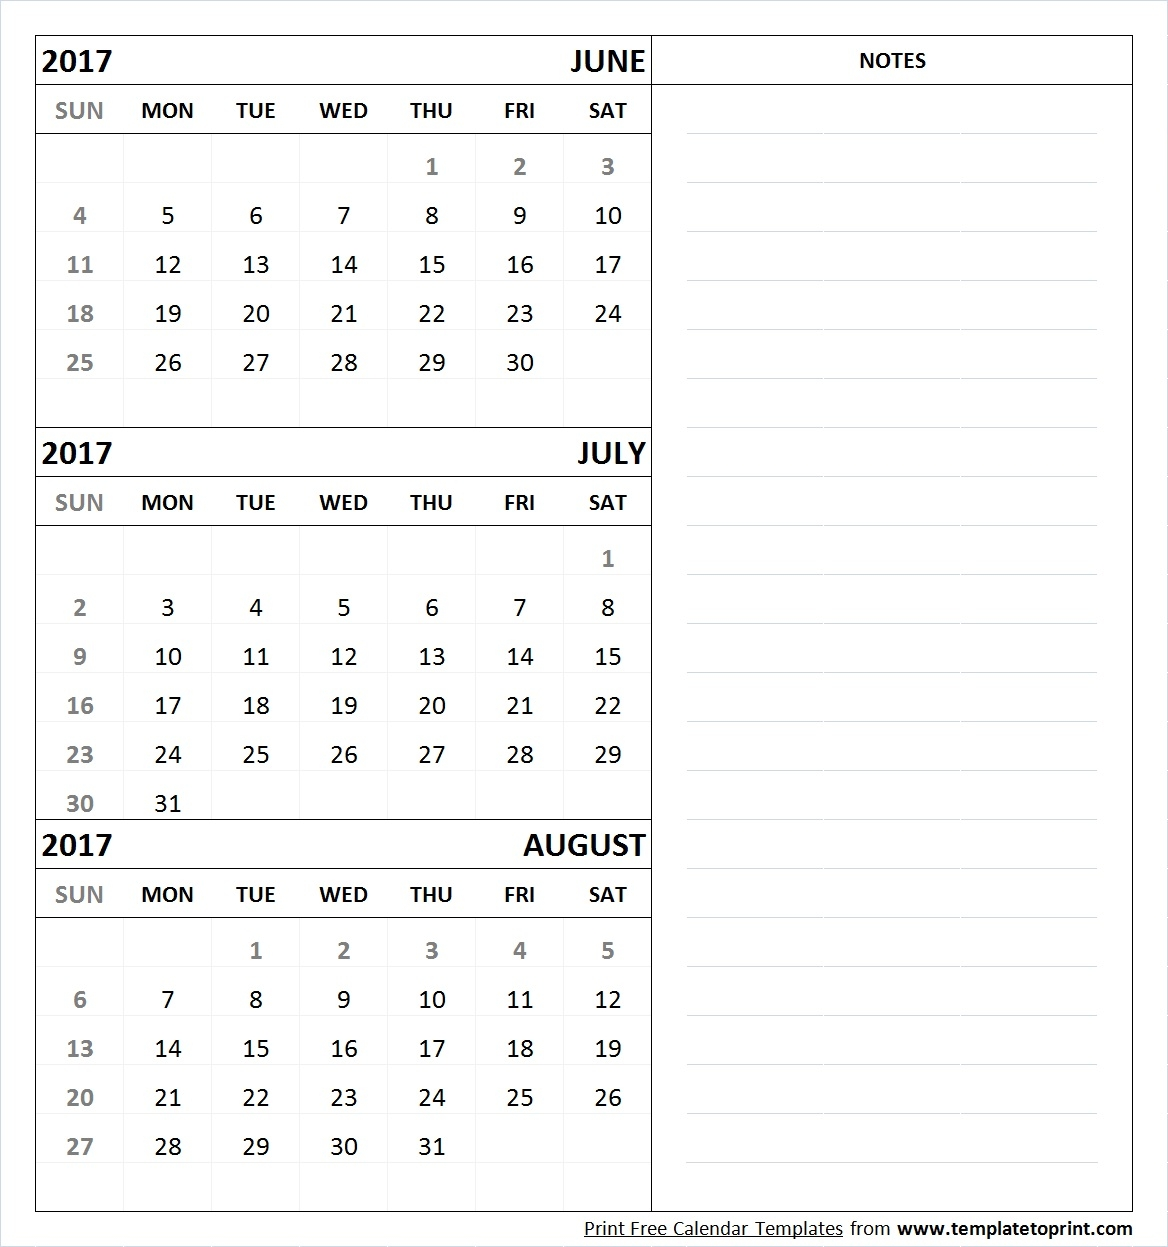 June 2017 Calendar Archives Template To Print 89uj